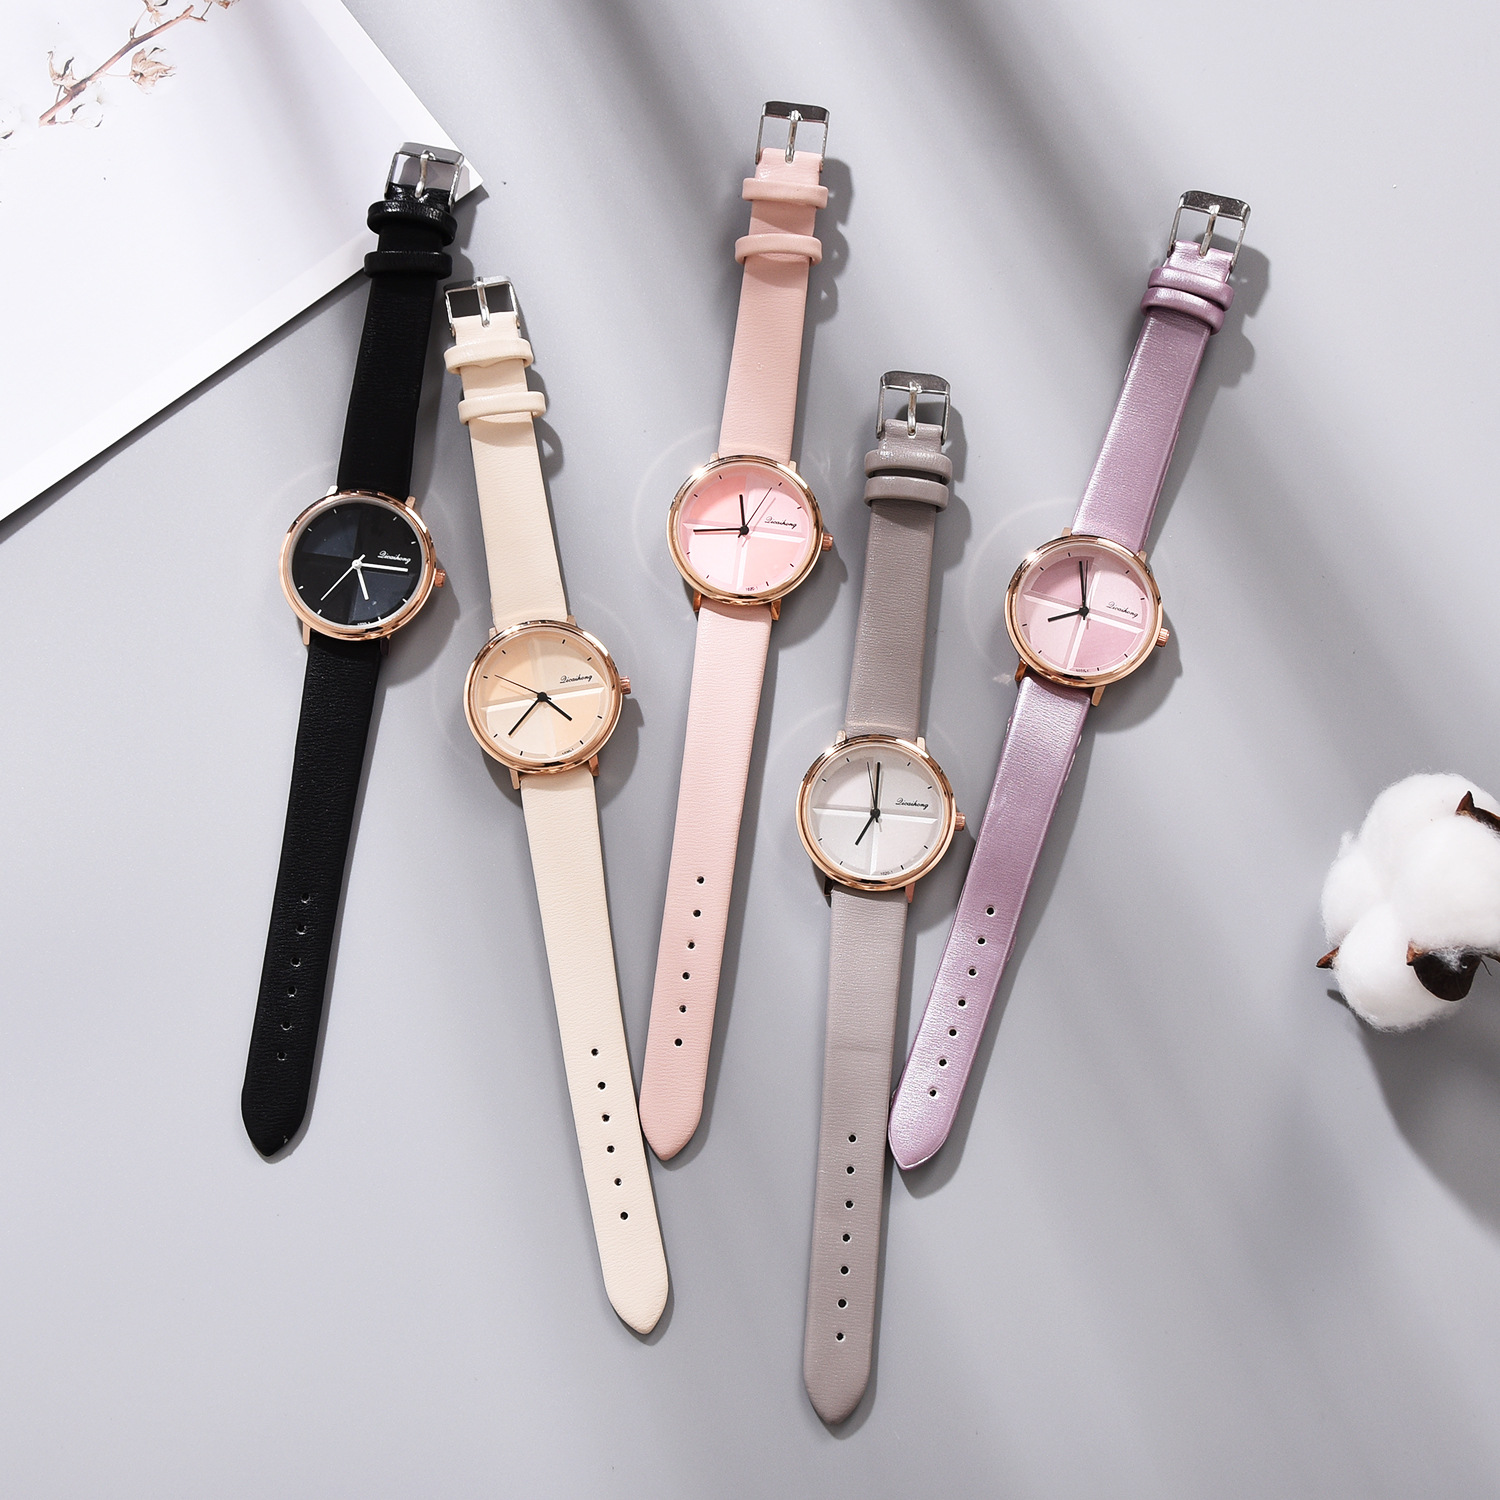 2019 Exquisite Minimalist Style Ladies Watch Fashion Quartz Ladies Watch Elegant Girl Watch Buckle Limited Edition Coated Glass in Women 39 s Watches from Watches